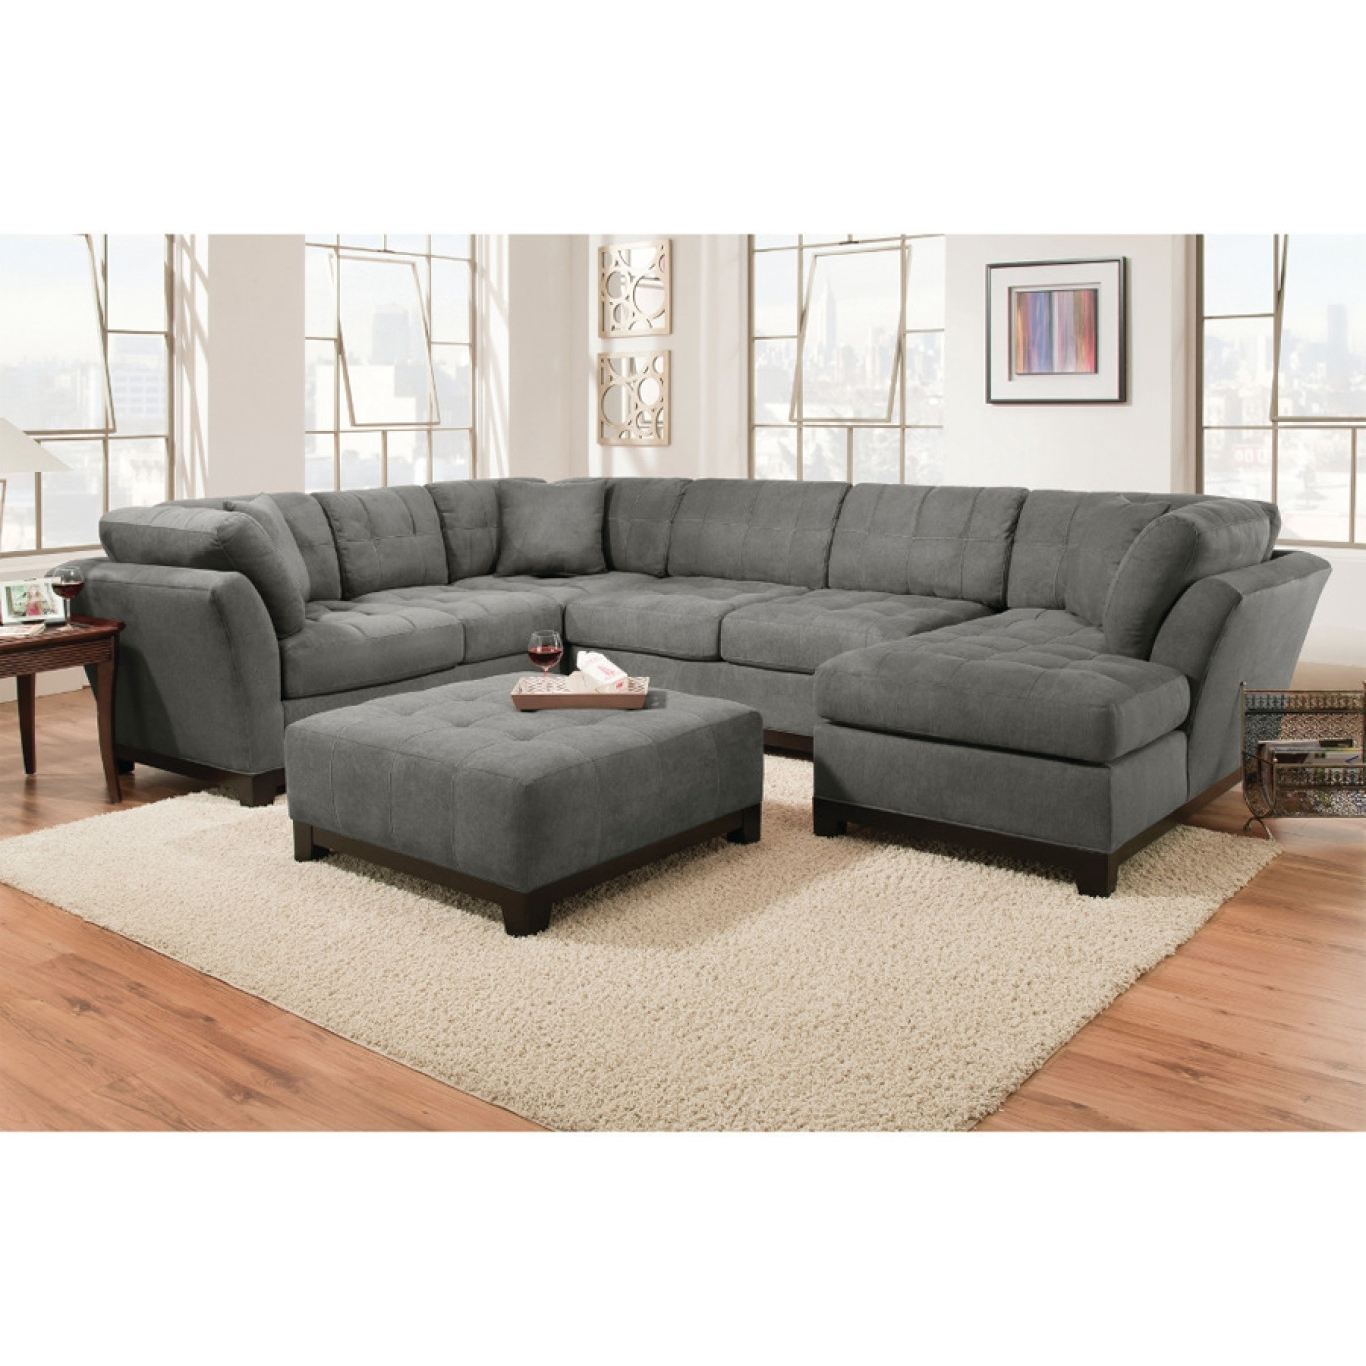 Most Up To Date Bassett Furniture Greensboro Nc Inside Greensboro Nc Sectional Sofas (Gallery 2 of 20)